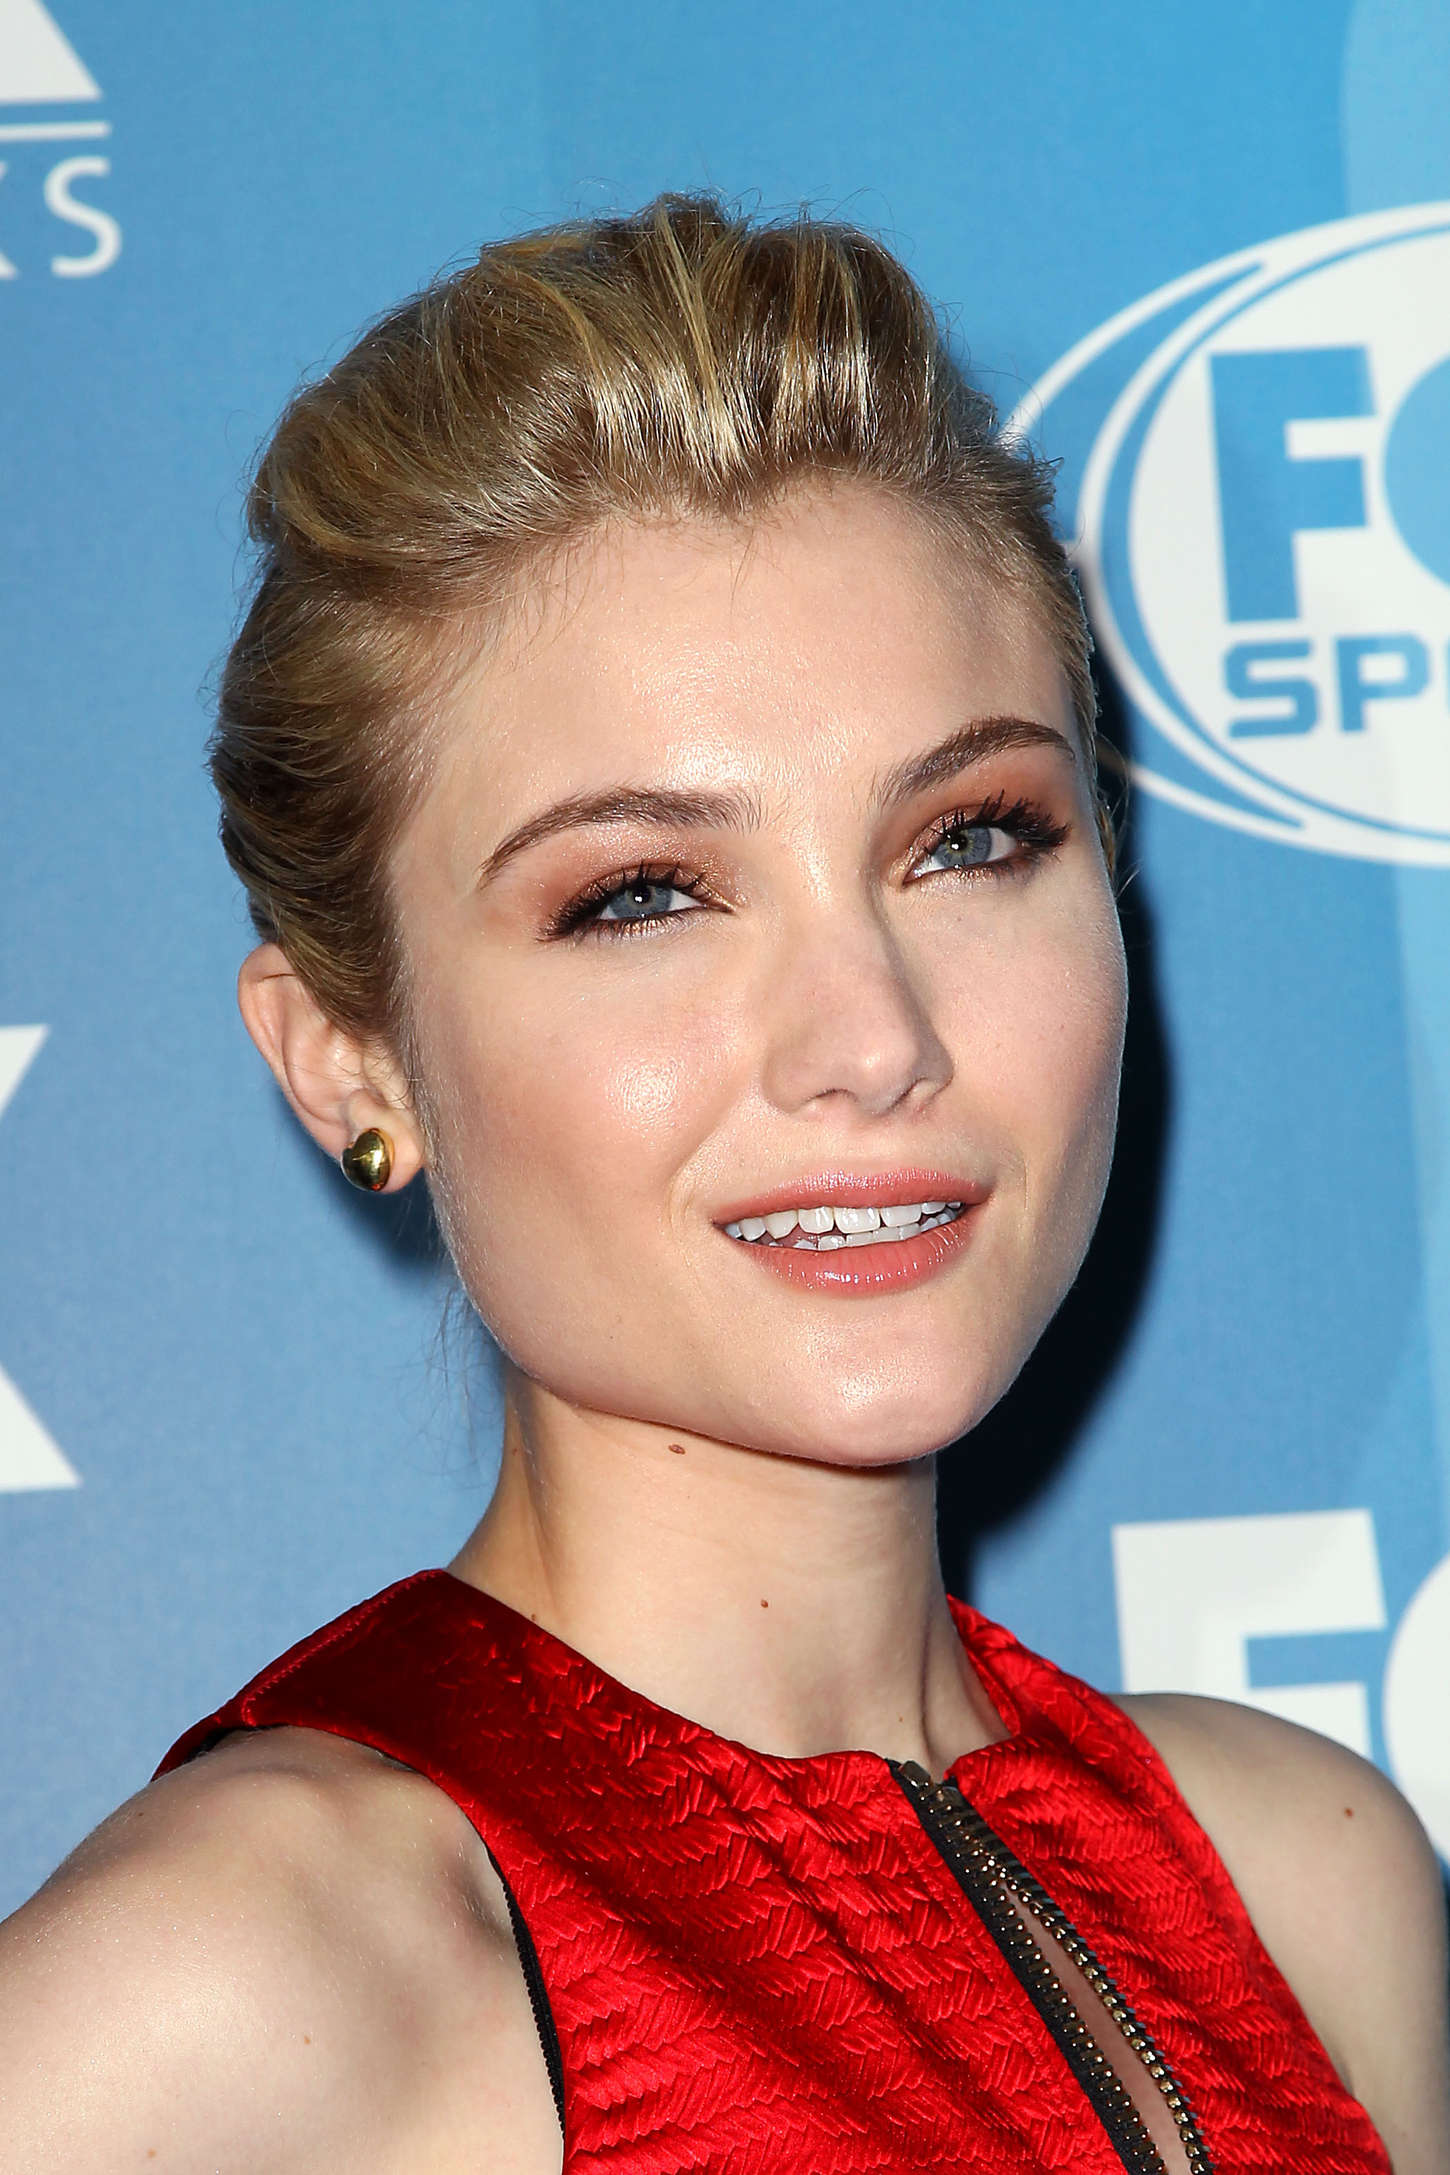 Skyler Samuels FOX Programming Presentation in New York